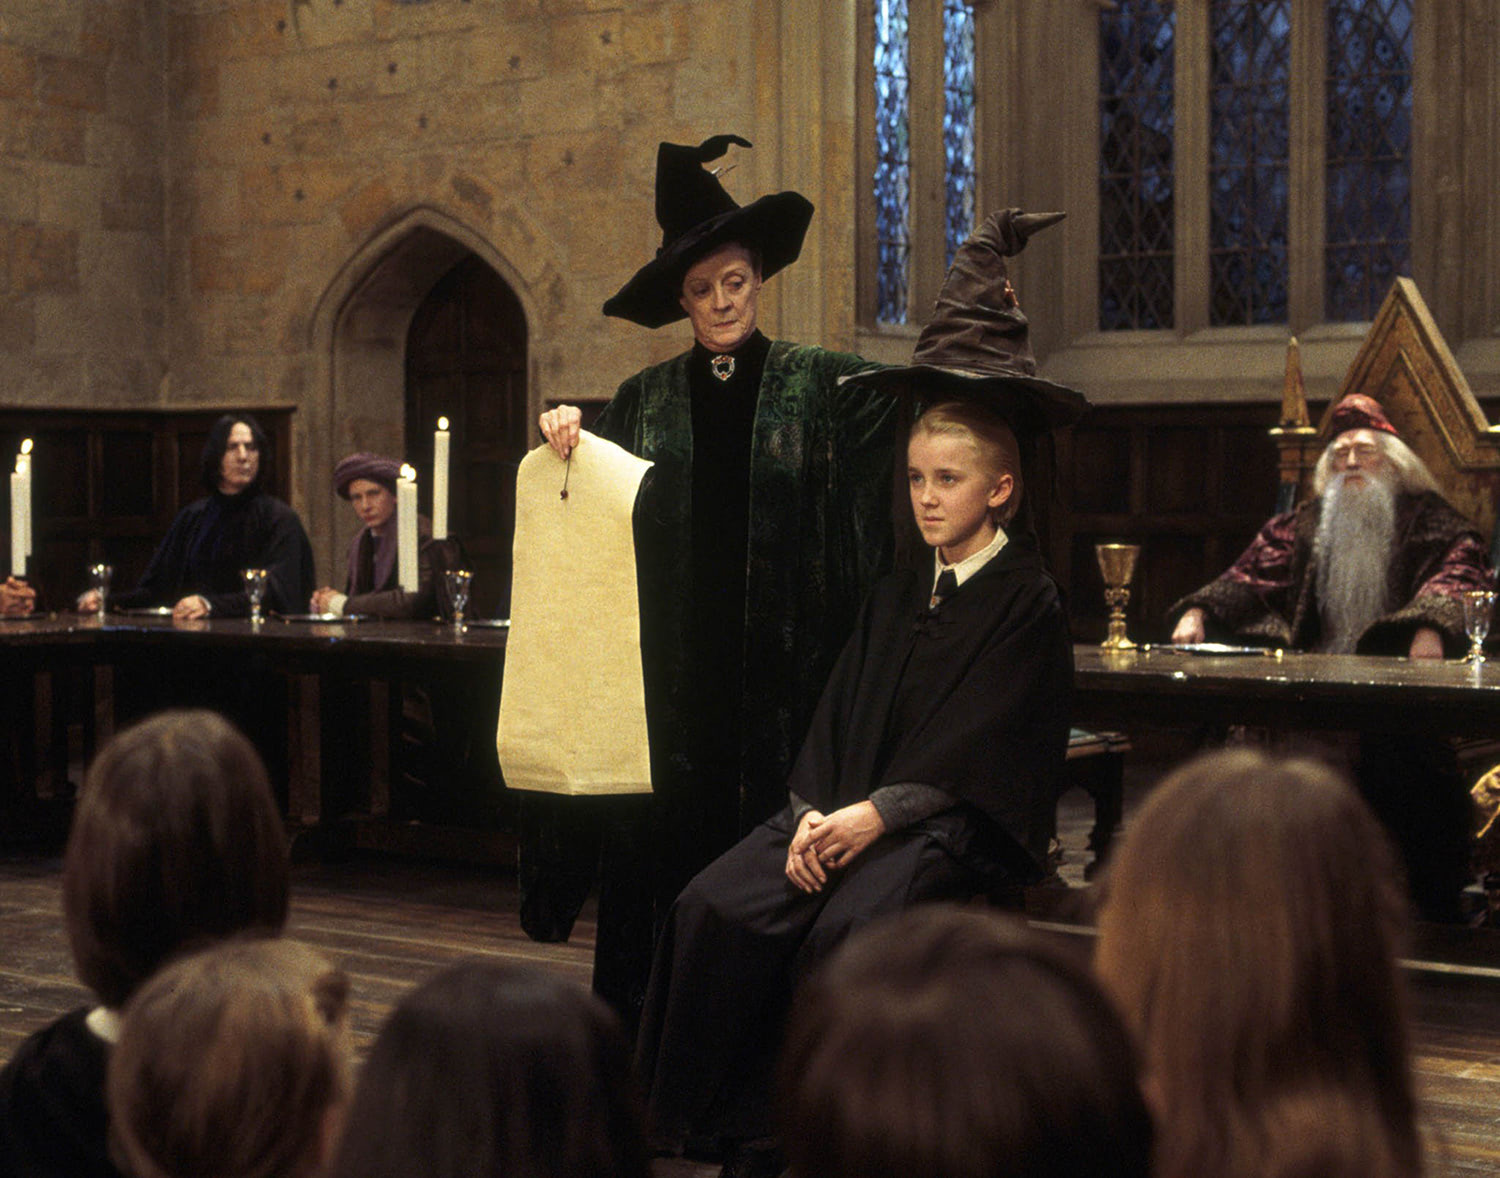 Draco Malfoy and the Sorting Hat